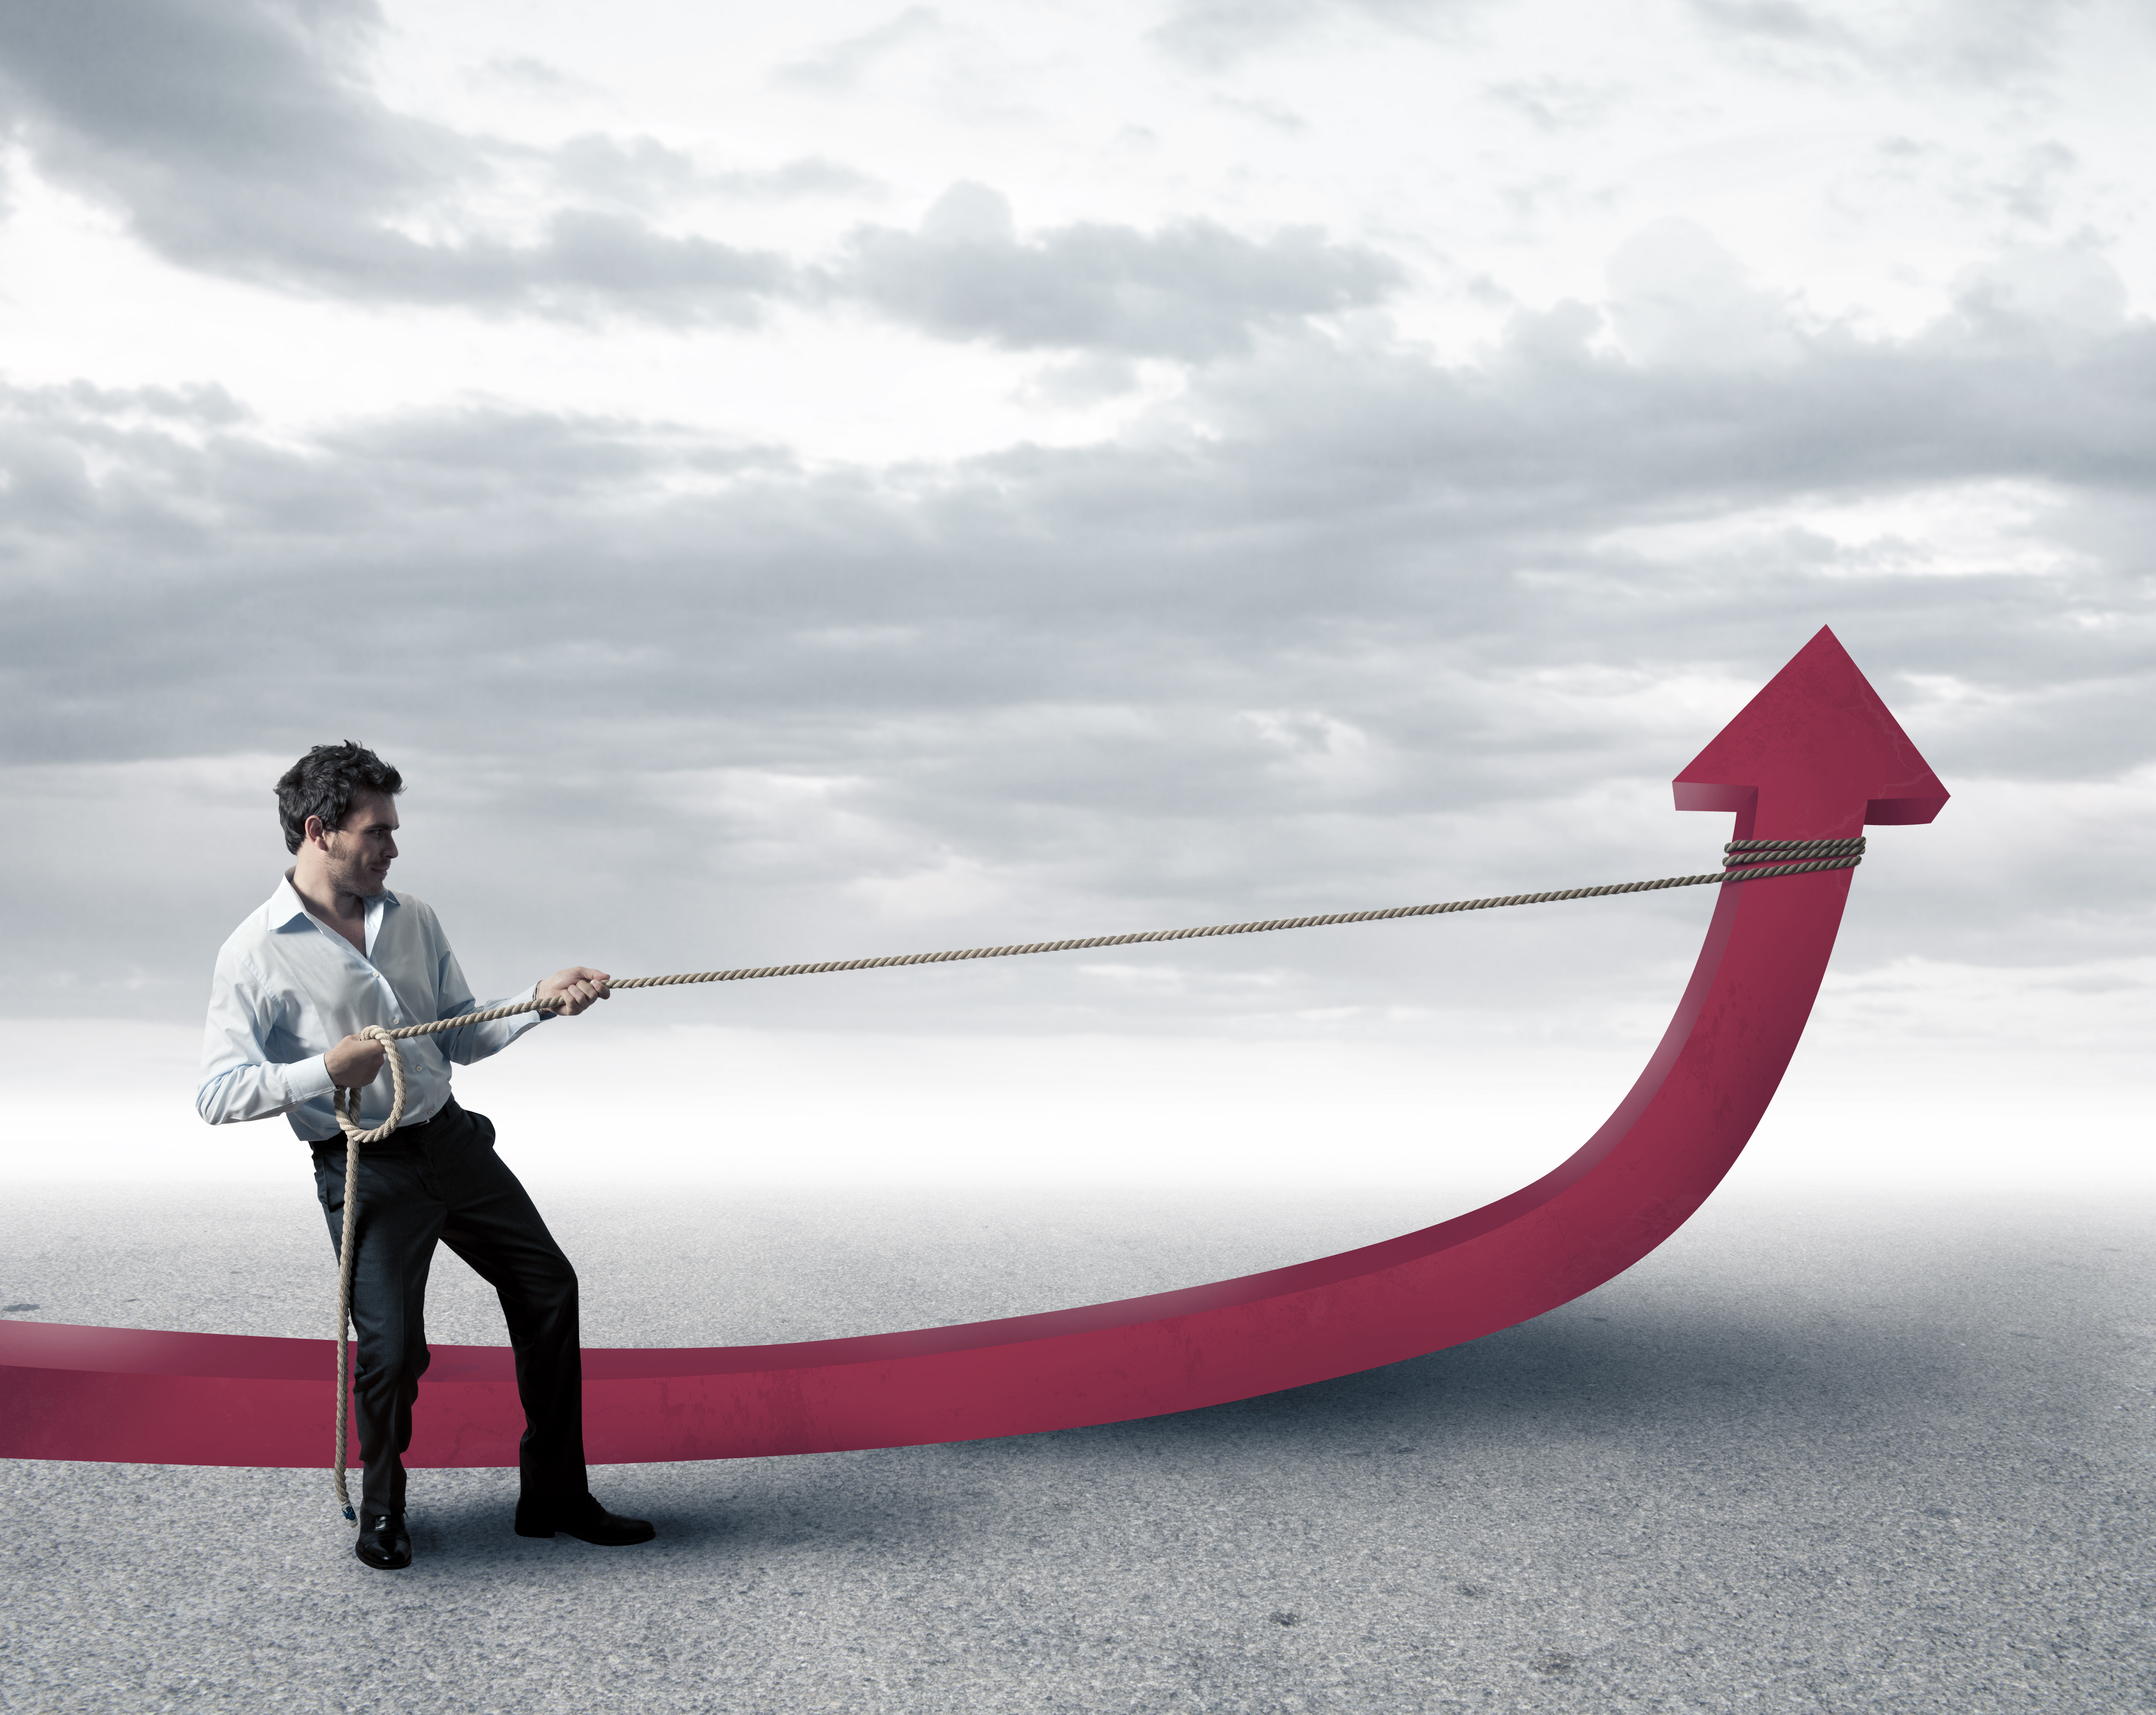 referral management (image: man lassoing an arrow pointing up)